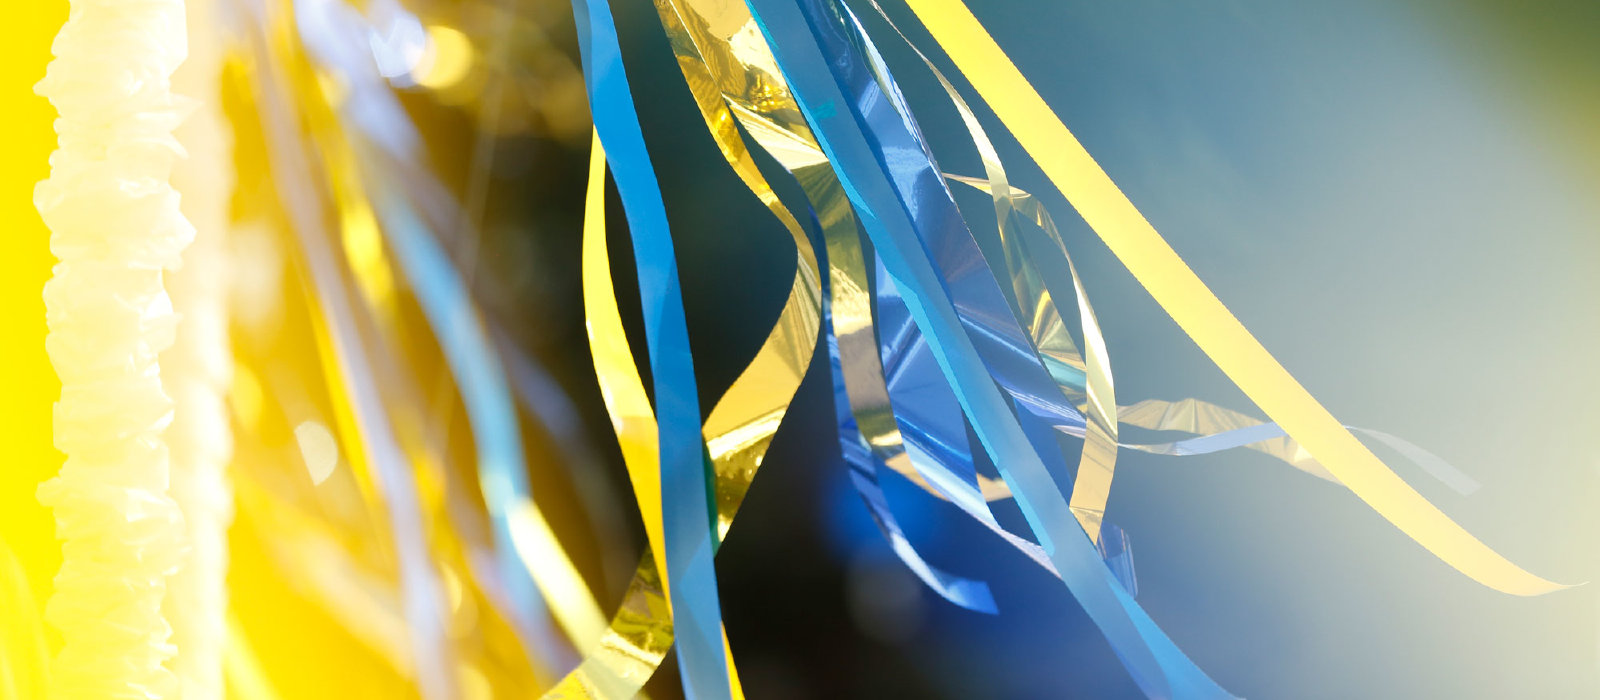 blue and gold ribbon zoomed up closely